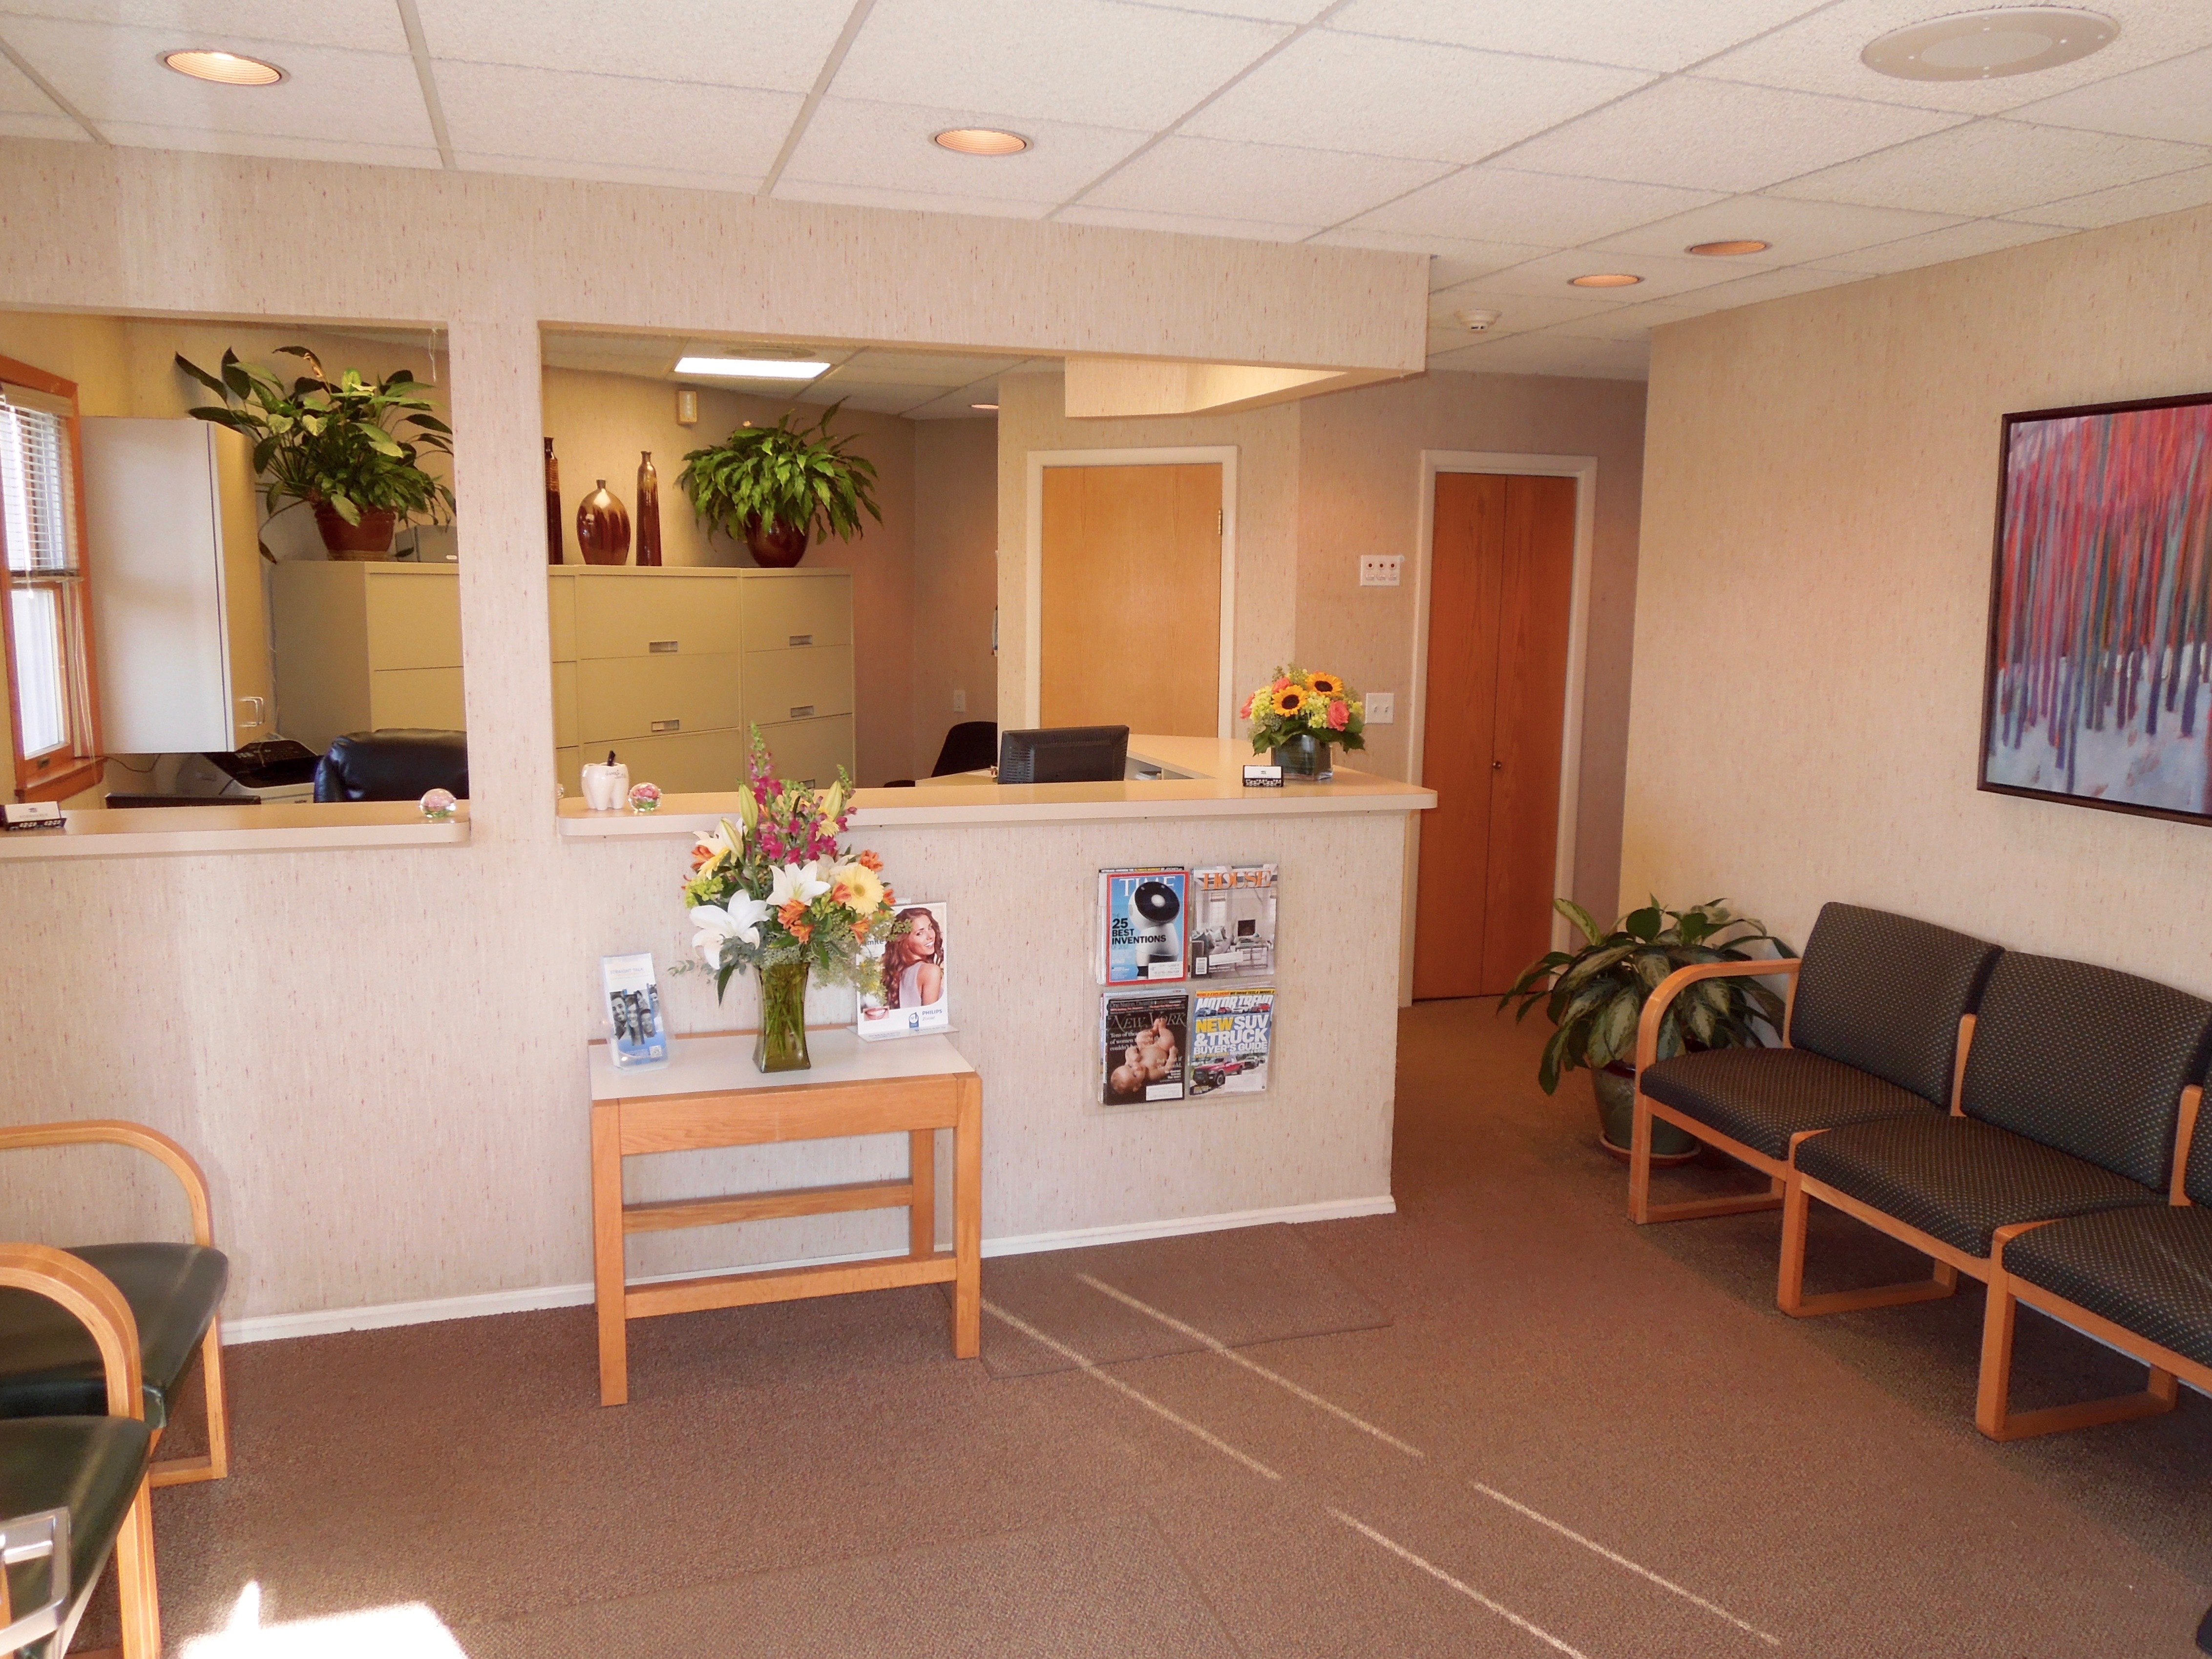 Kornhaber Dental Group - Port Washington, NY